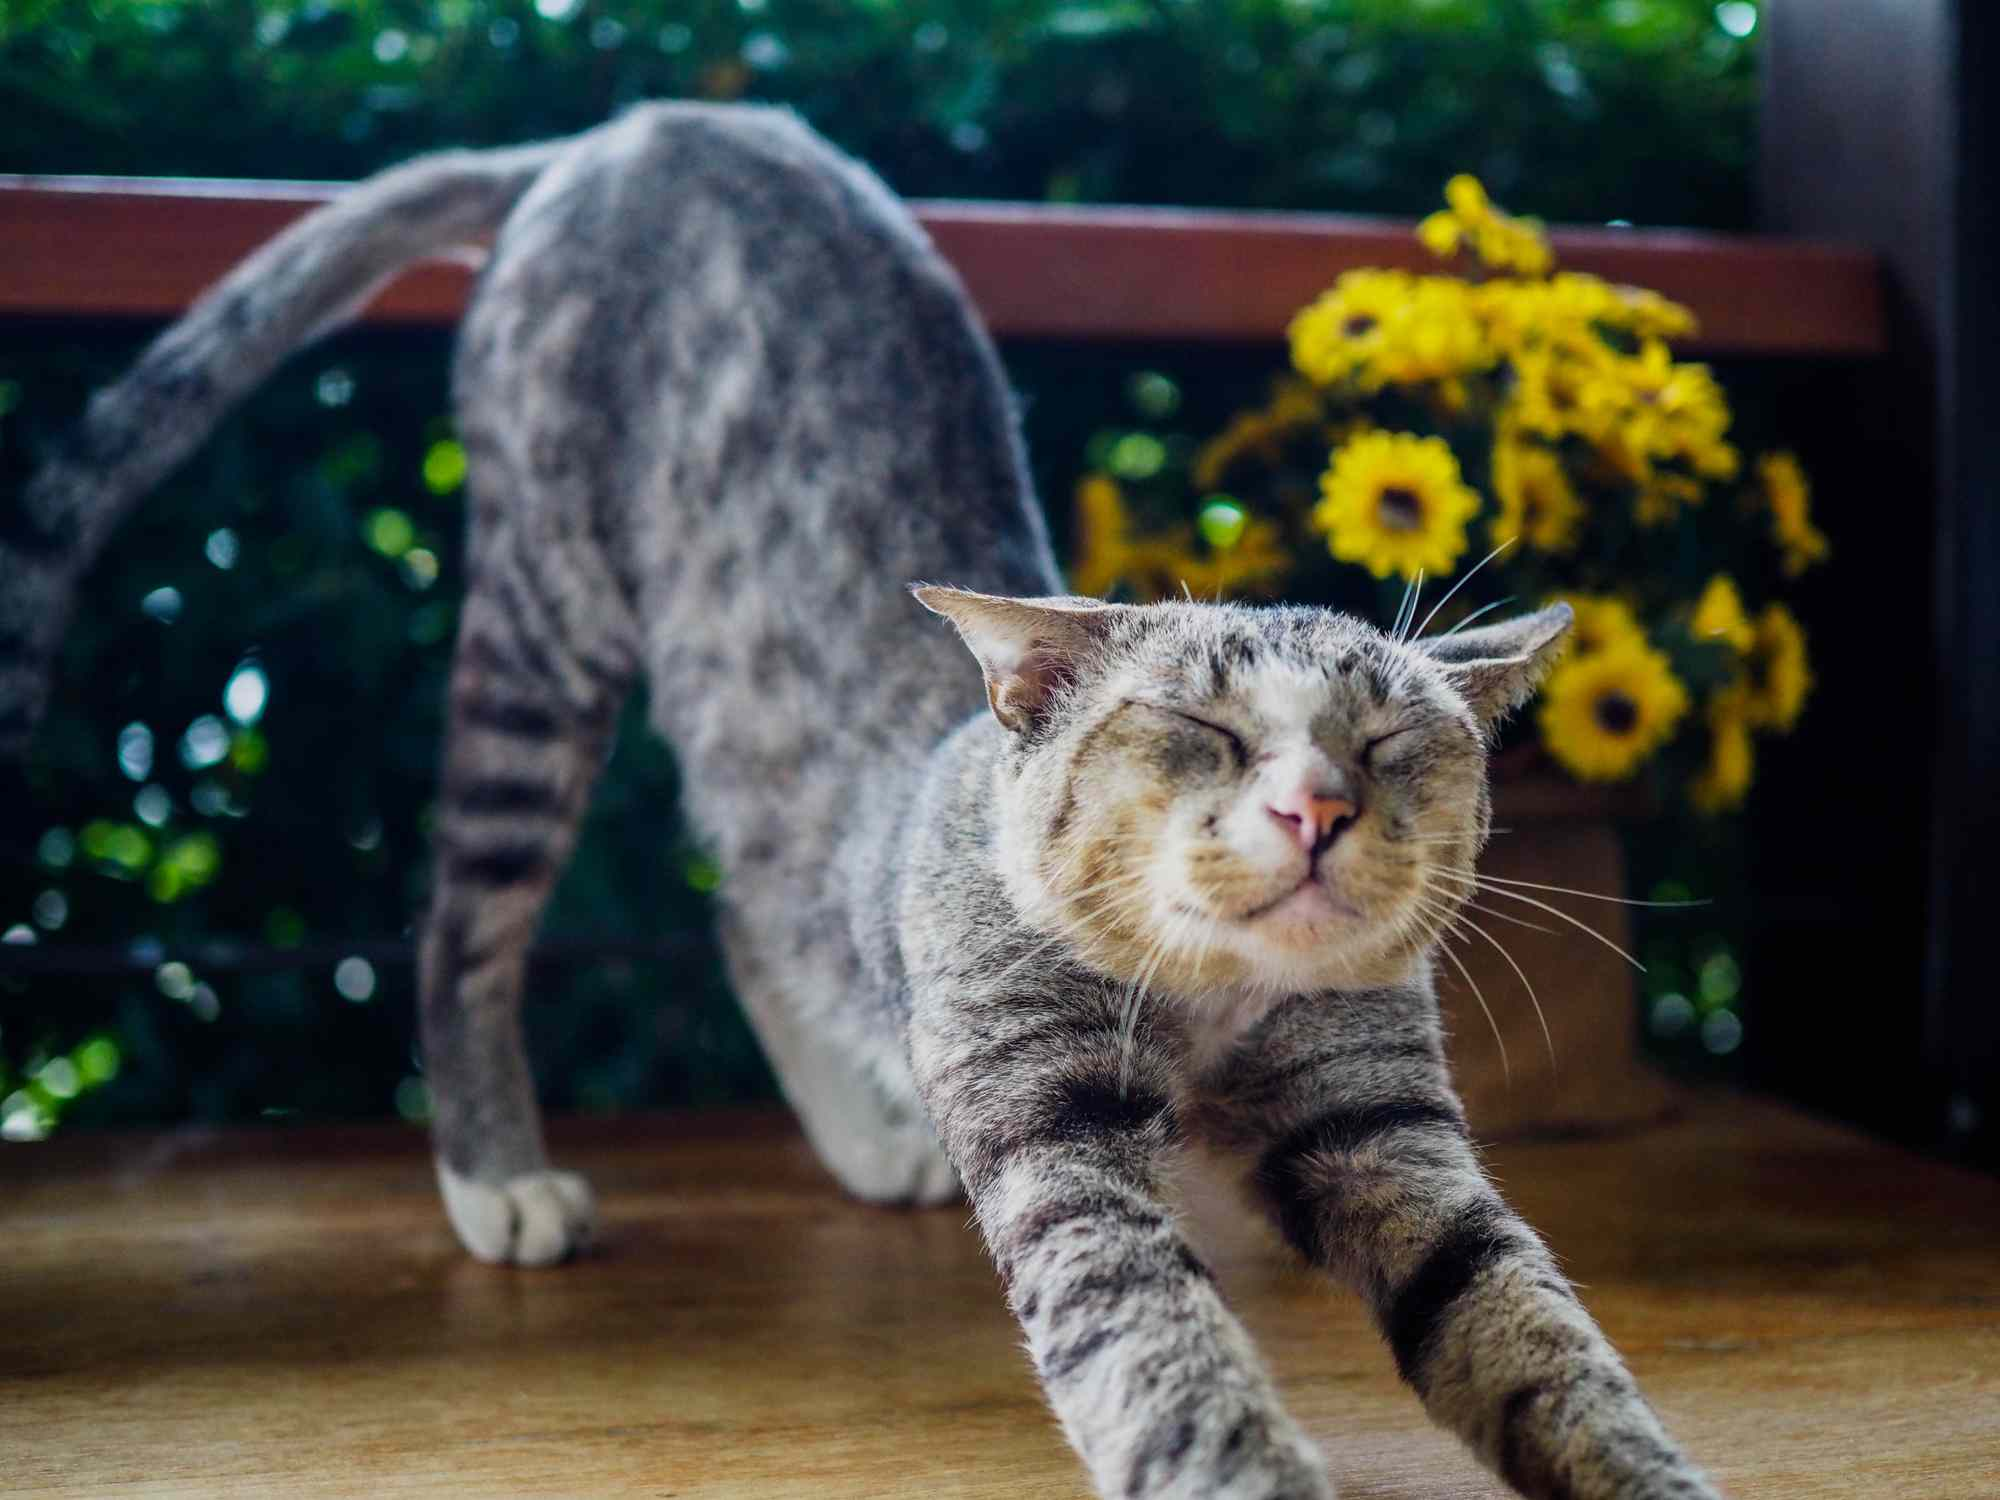 A spotted Egyptian mau cat stretching in front of flowers.